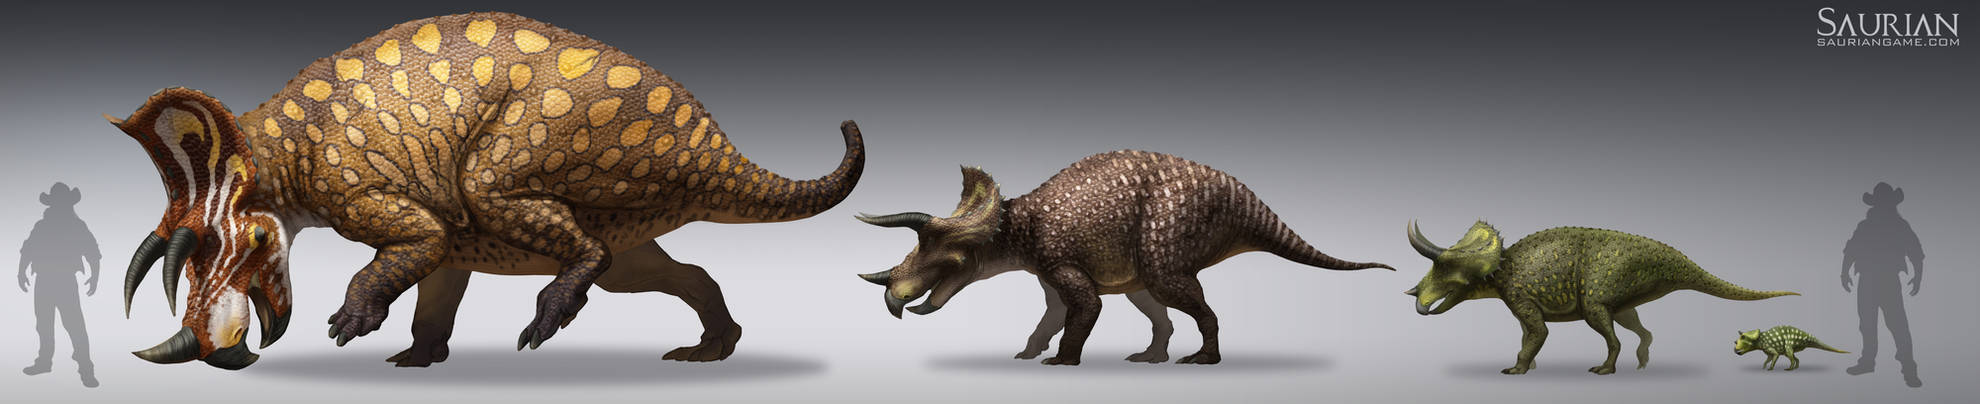 Saurian-Triceratops Lifecycle